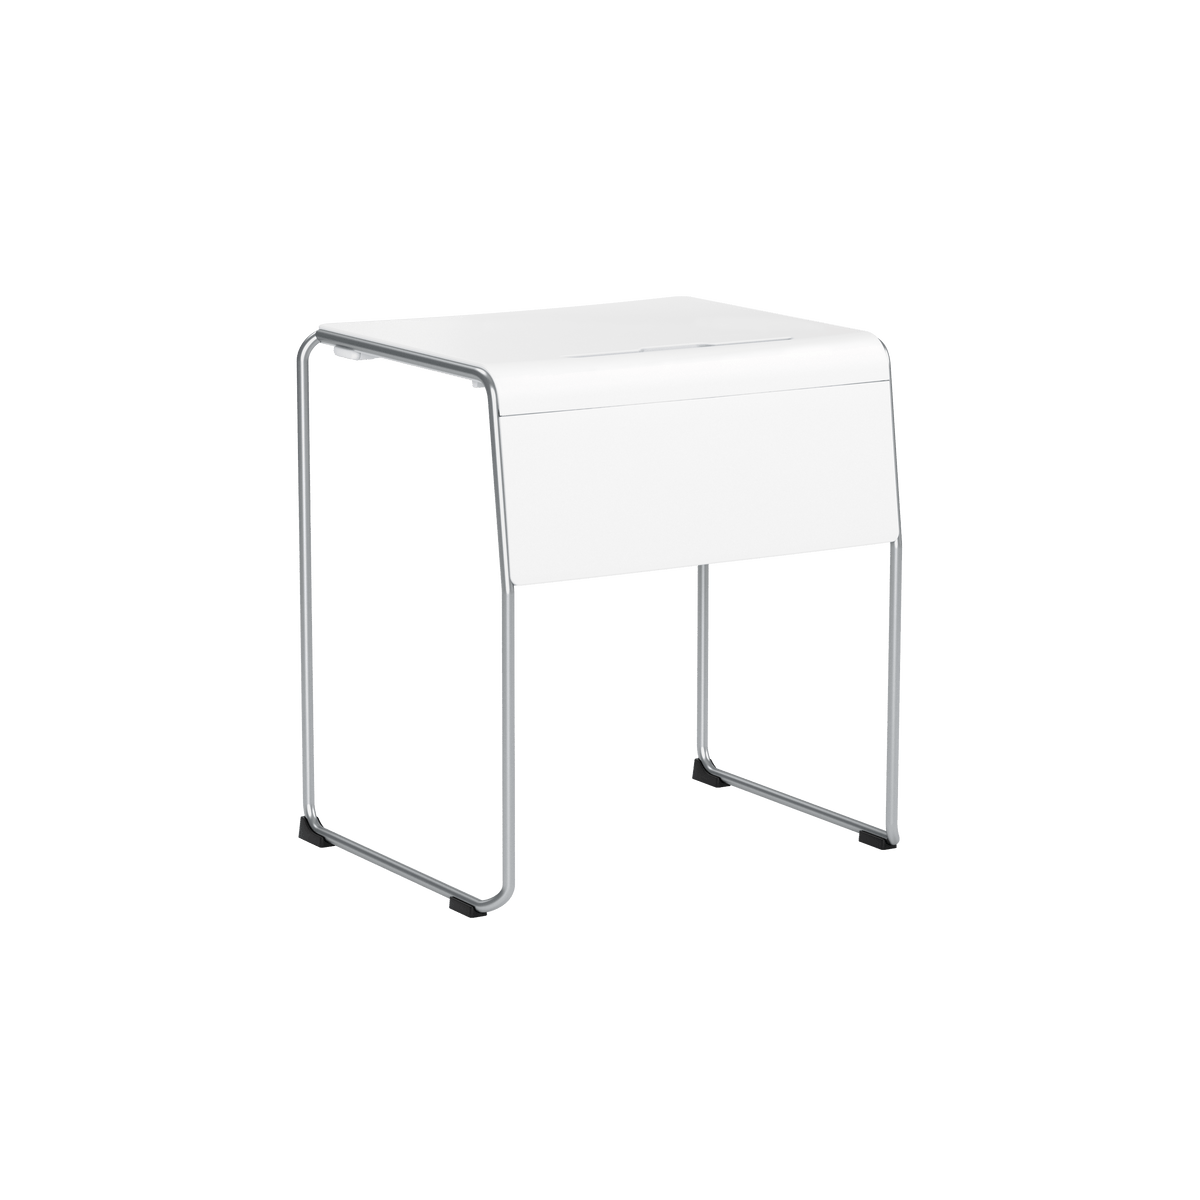 Performance - Zumi Small Student Desk - Duckys Office Furniture